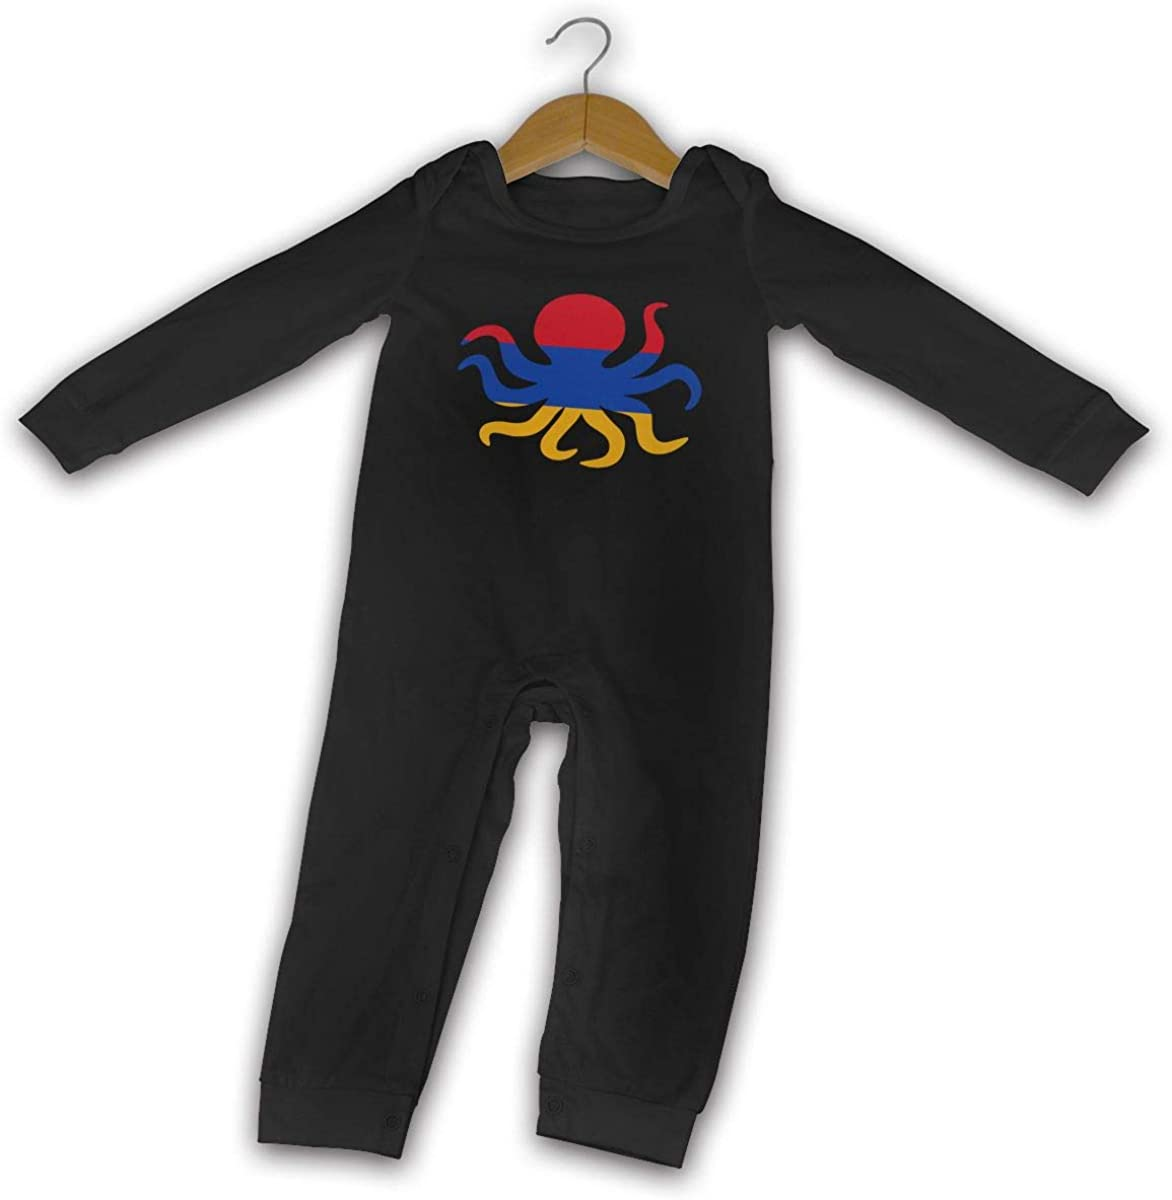 YELTY6F Octopus Armenia Flag Printed Baby One-Piece Suit Long Sleeve Rompers Black